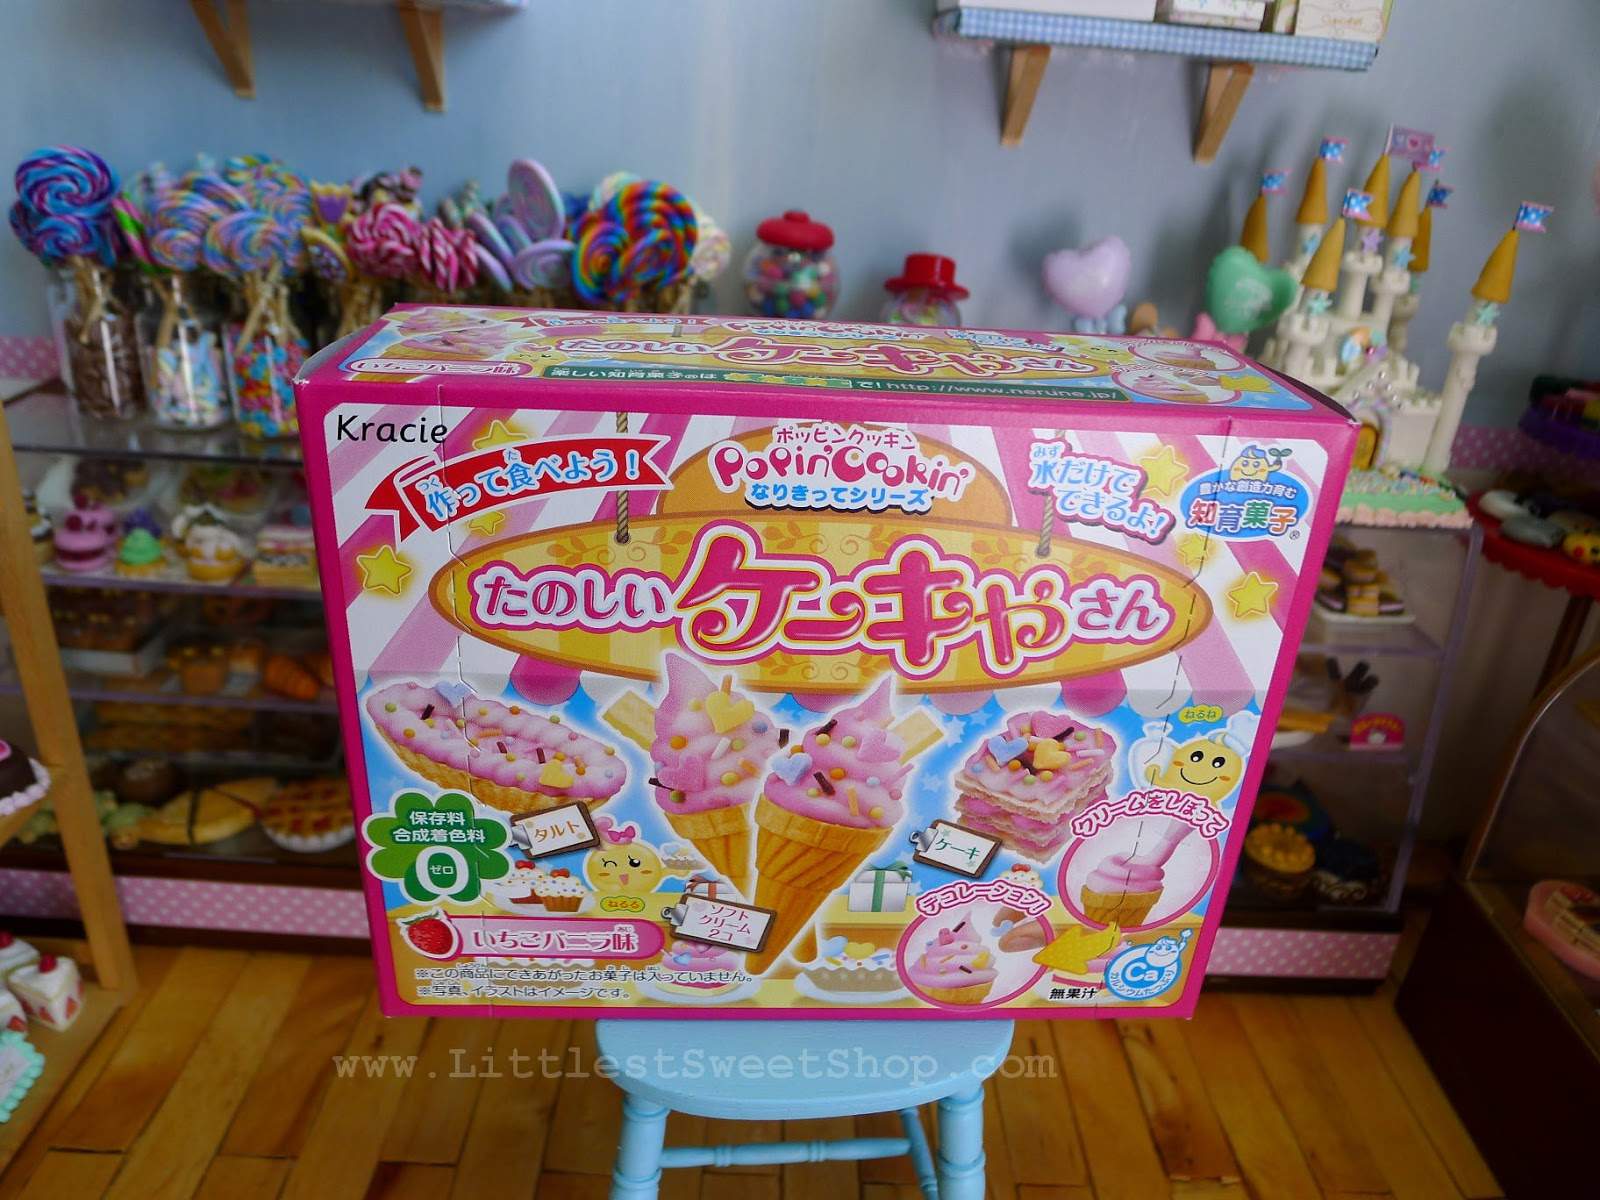 popin cookin cake instructions in english